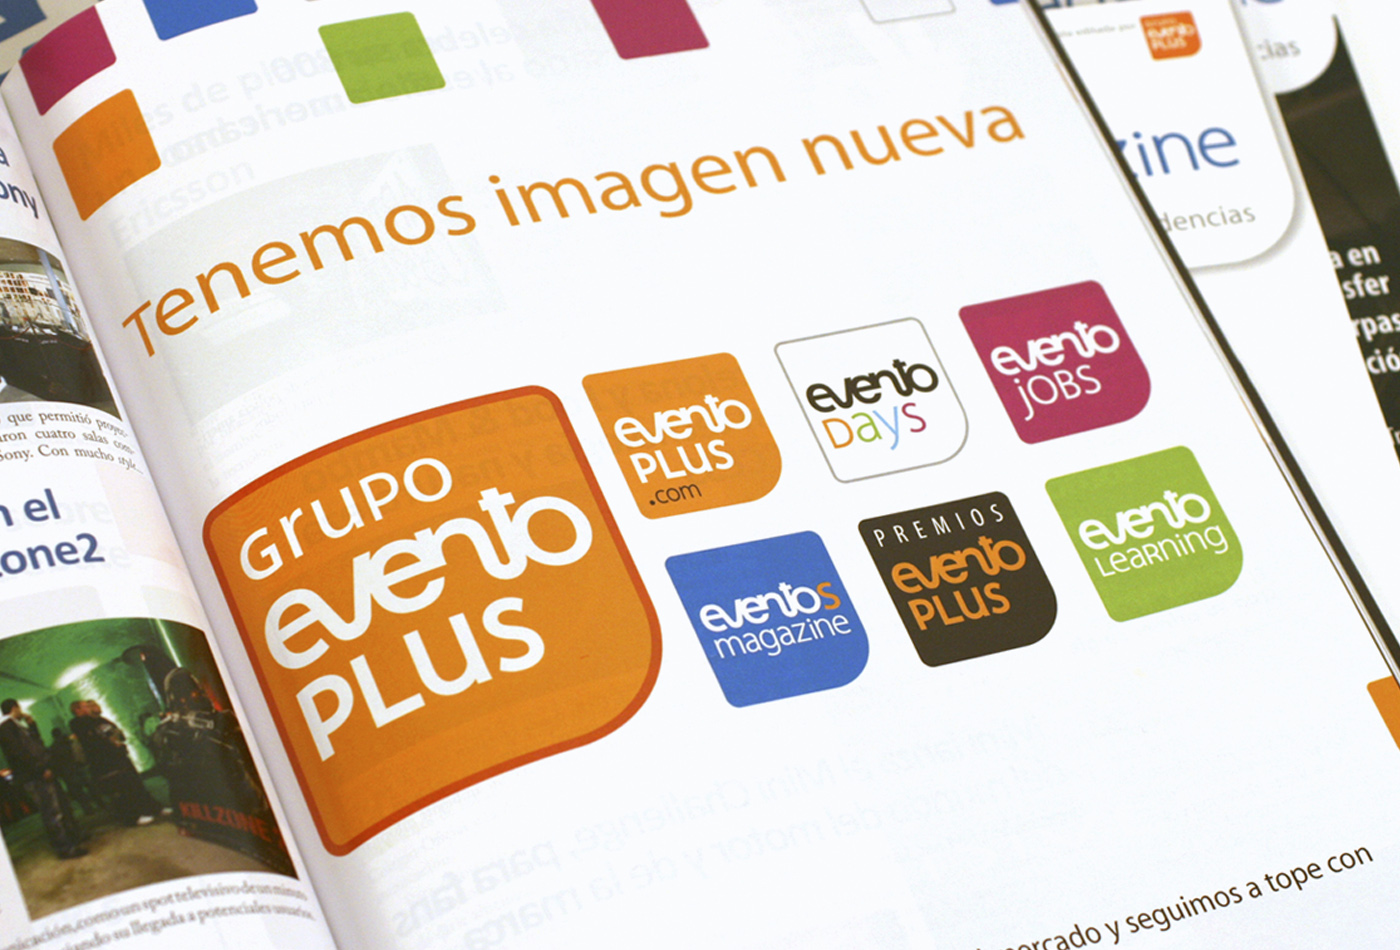 anuncio-grupo-evento-plus